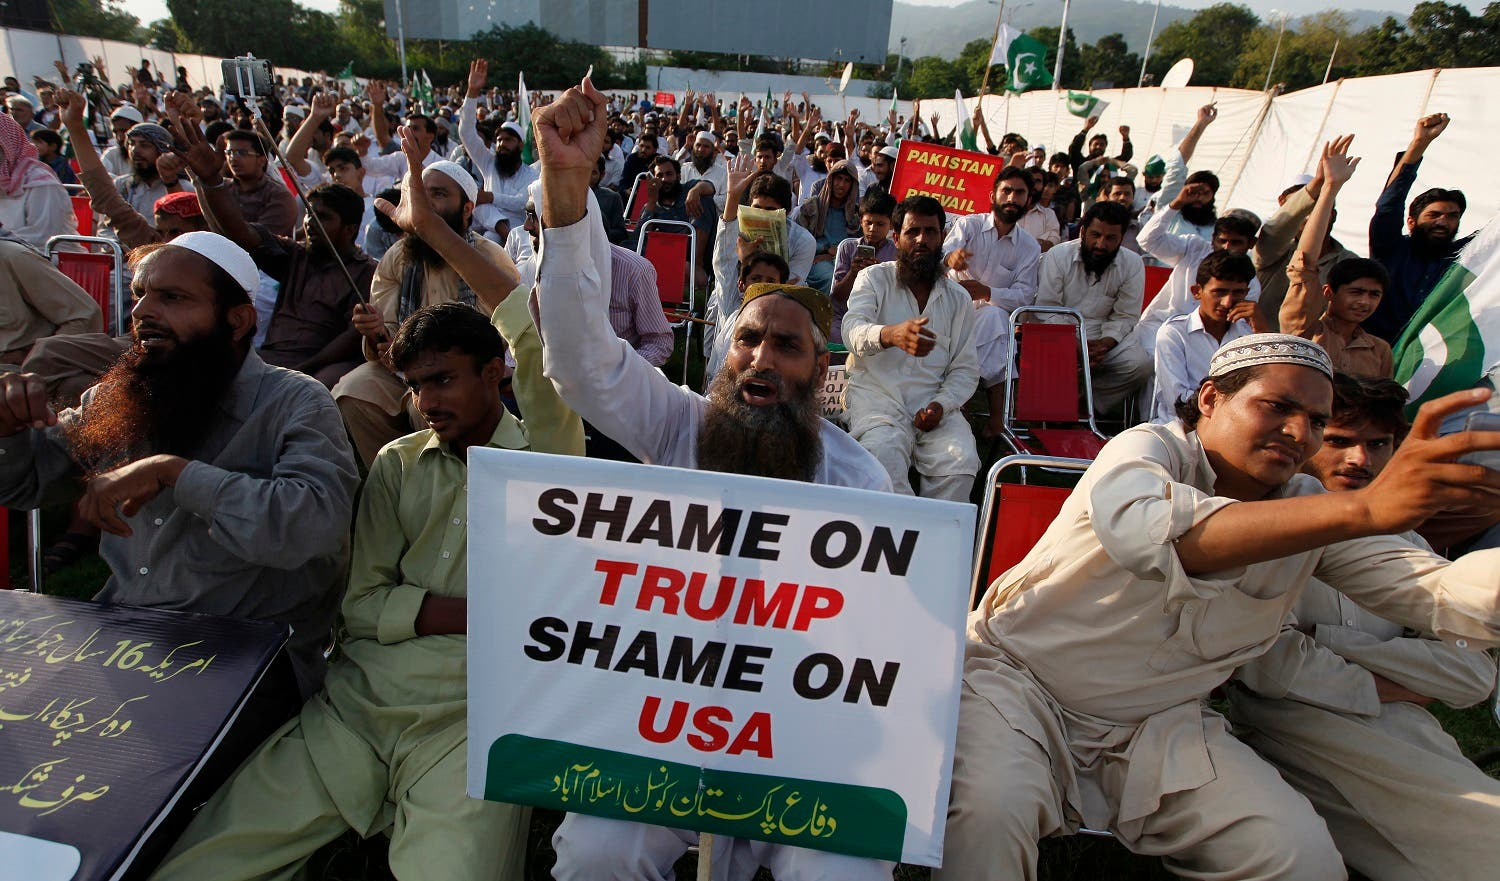 Supporters of the Pakistan Defense Council chant slogans during an anti-US rally in Islamabad, on Aug. 27, 2017. (AP)